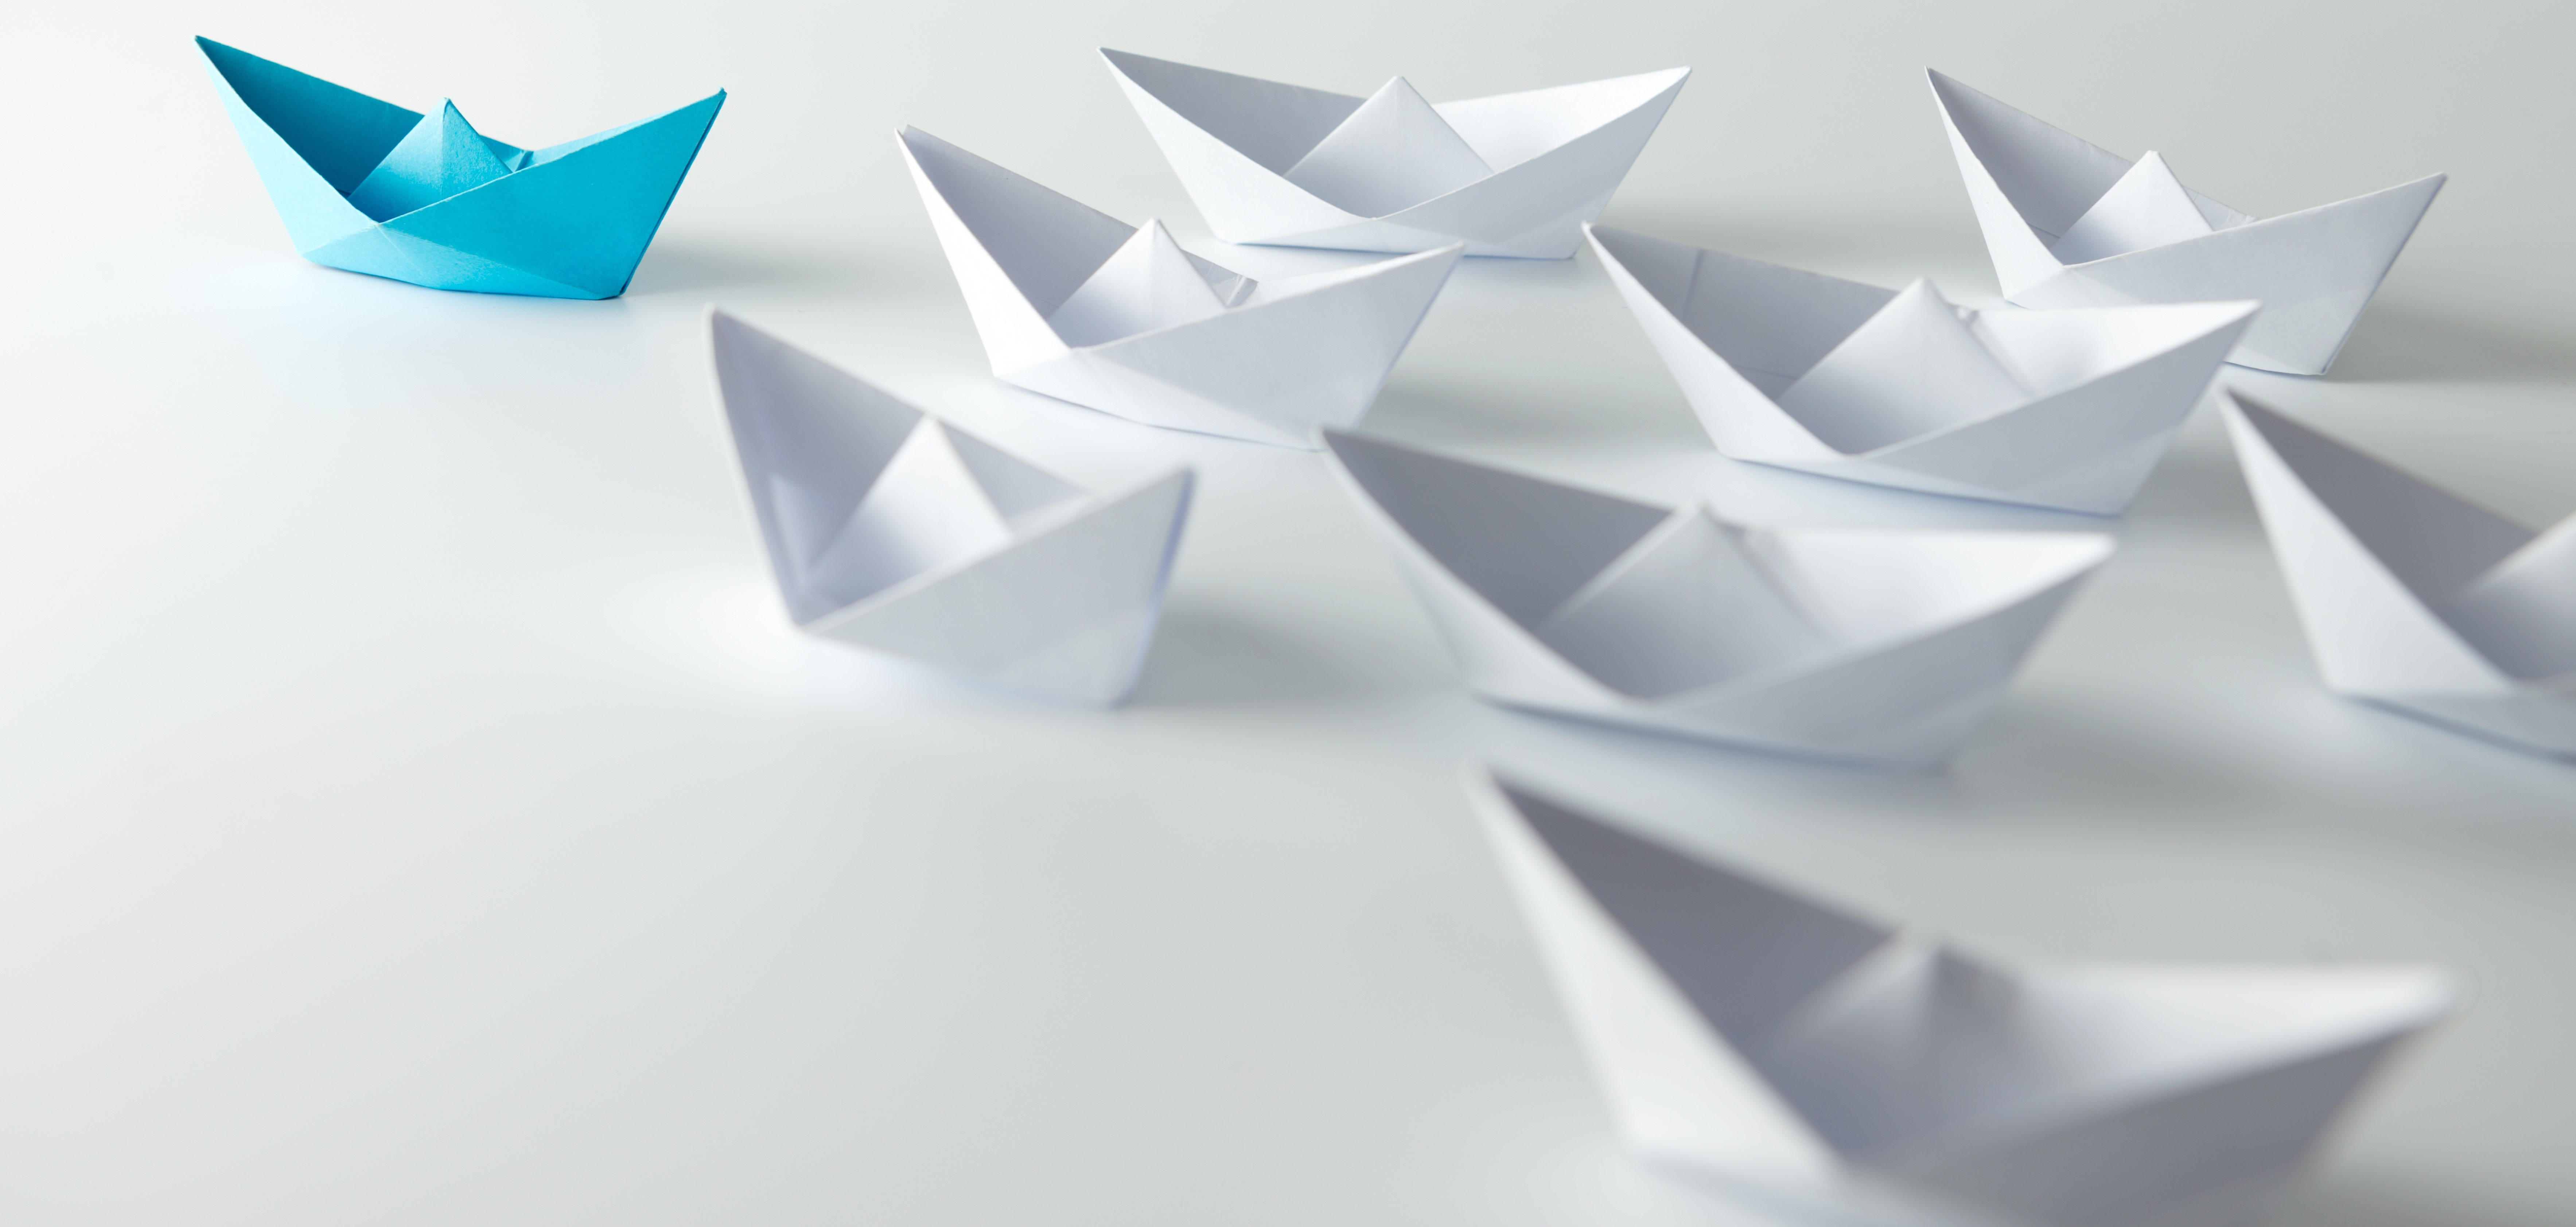 Follow the leader – why risk management needs commitment from the top